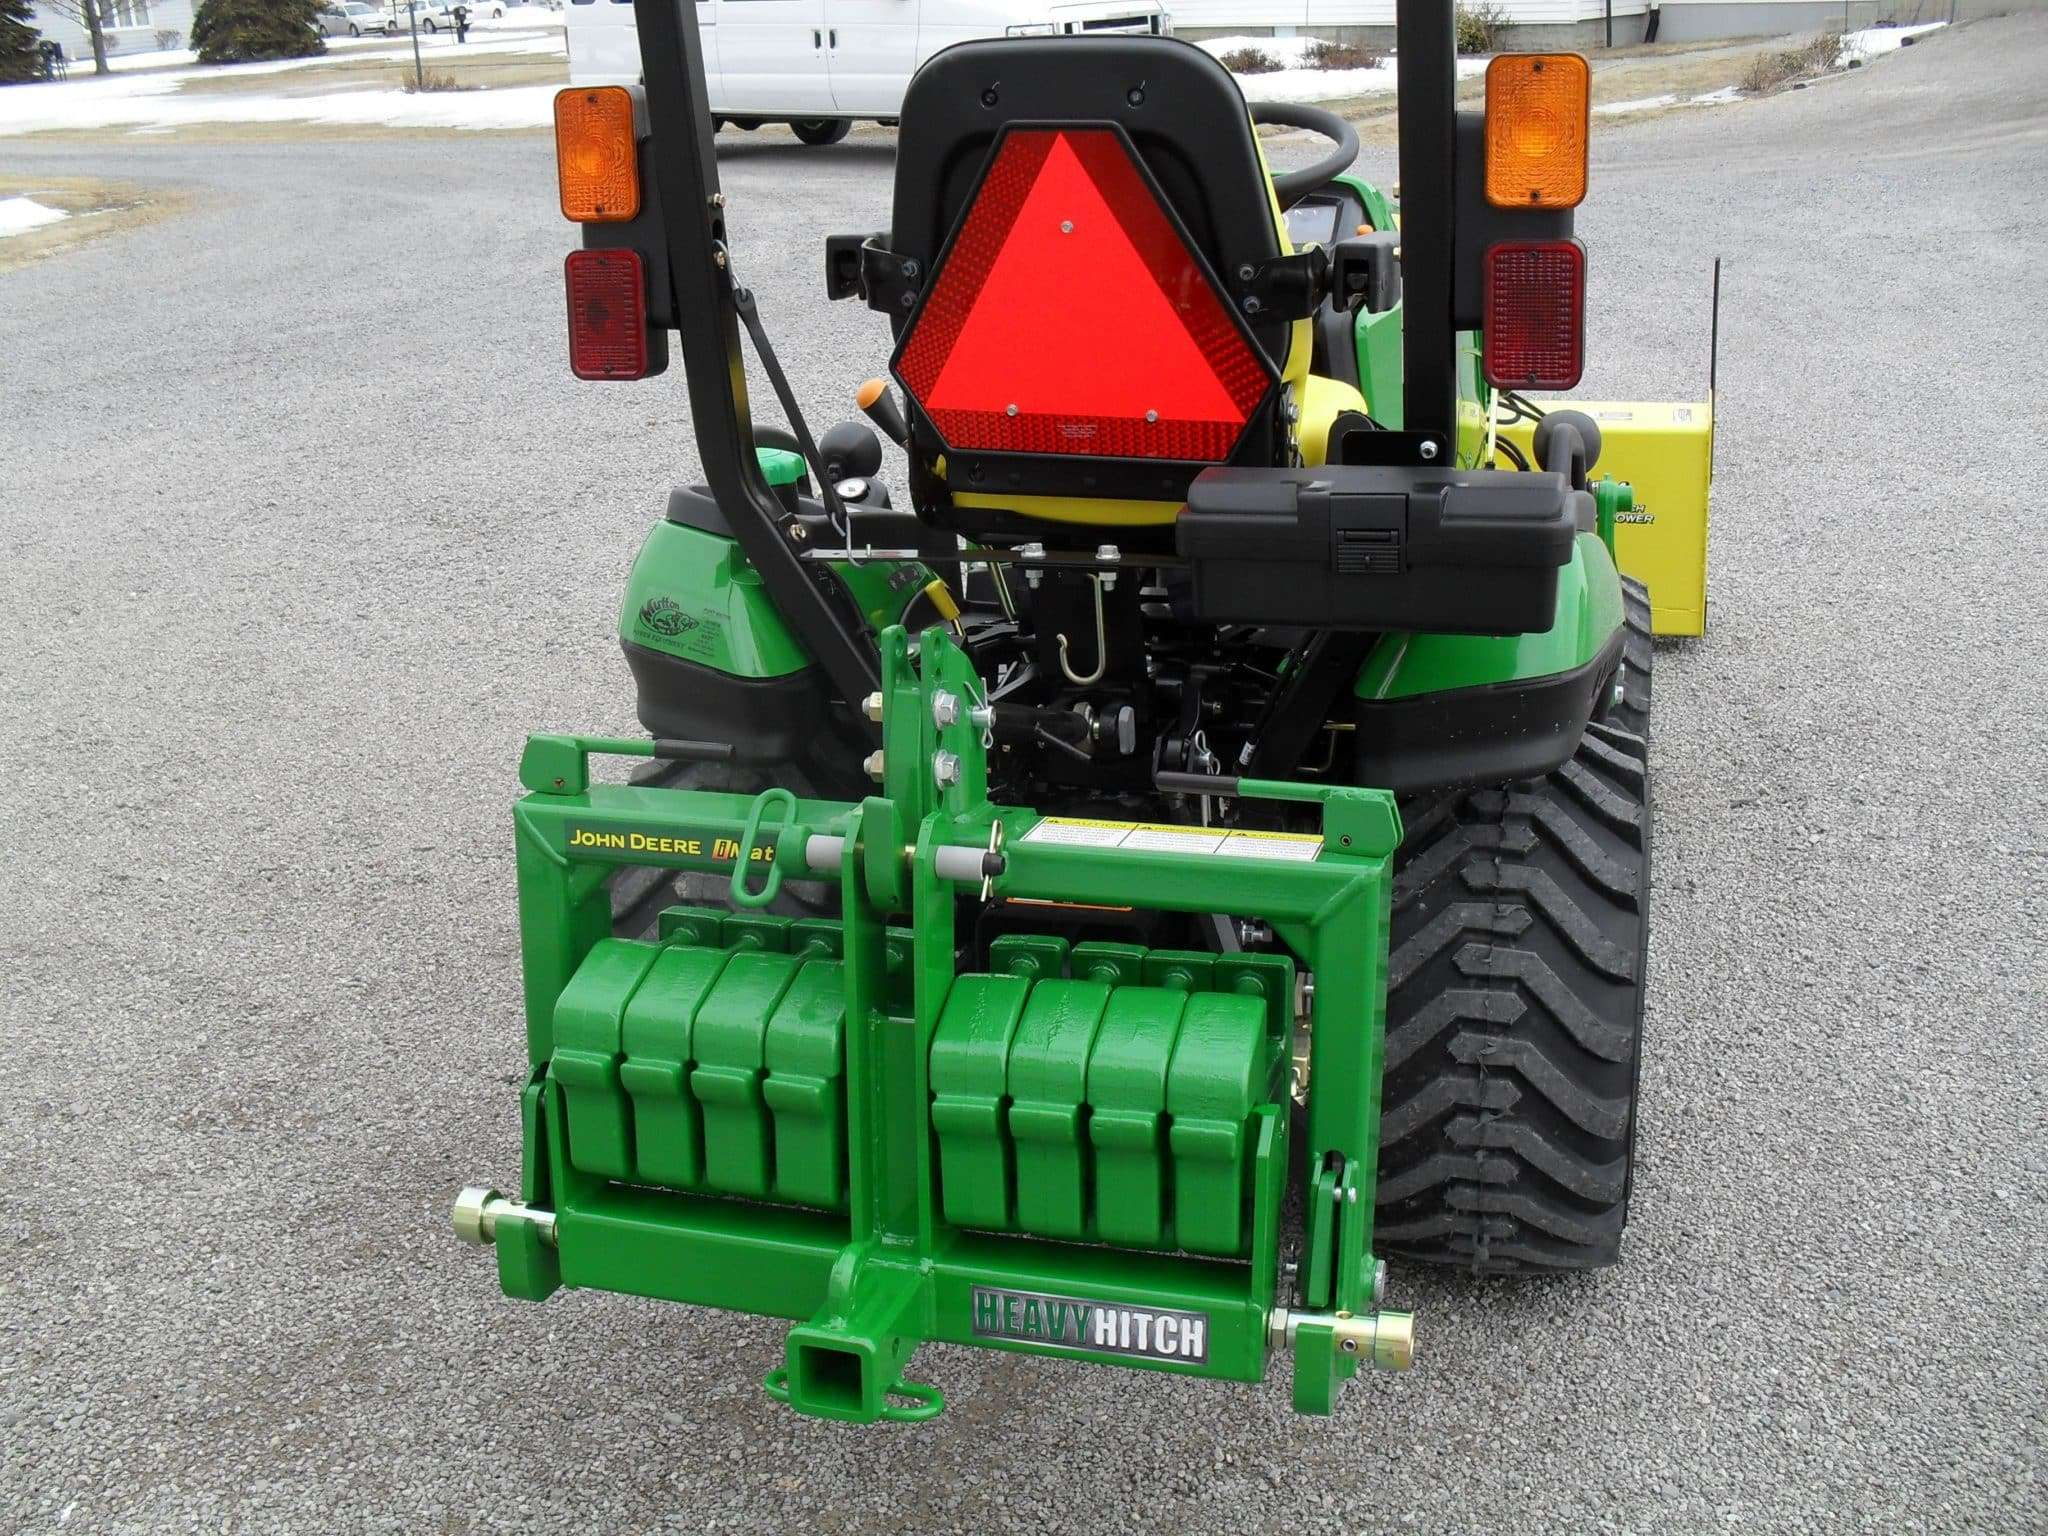 Tractor Attachments Product : Category point hitch receiver with suitcase weight